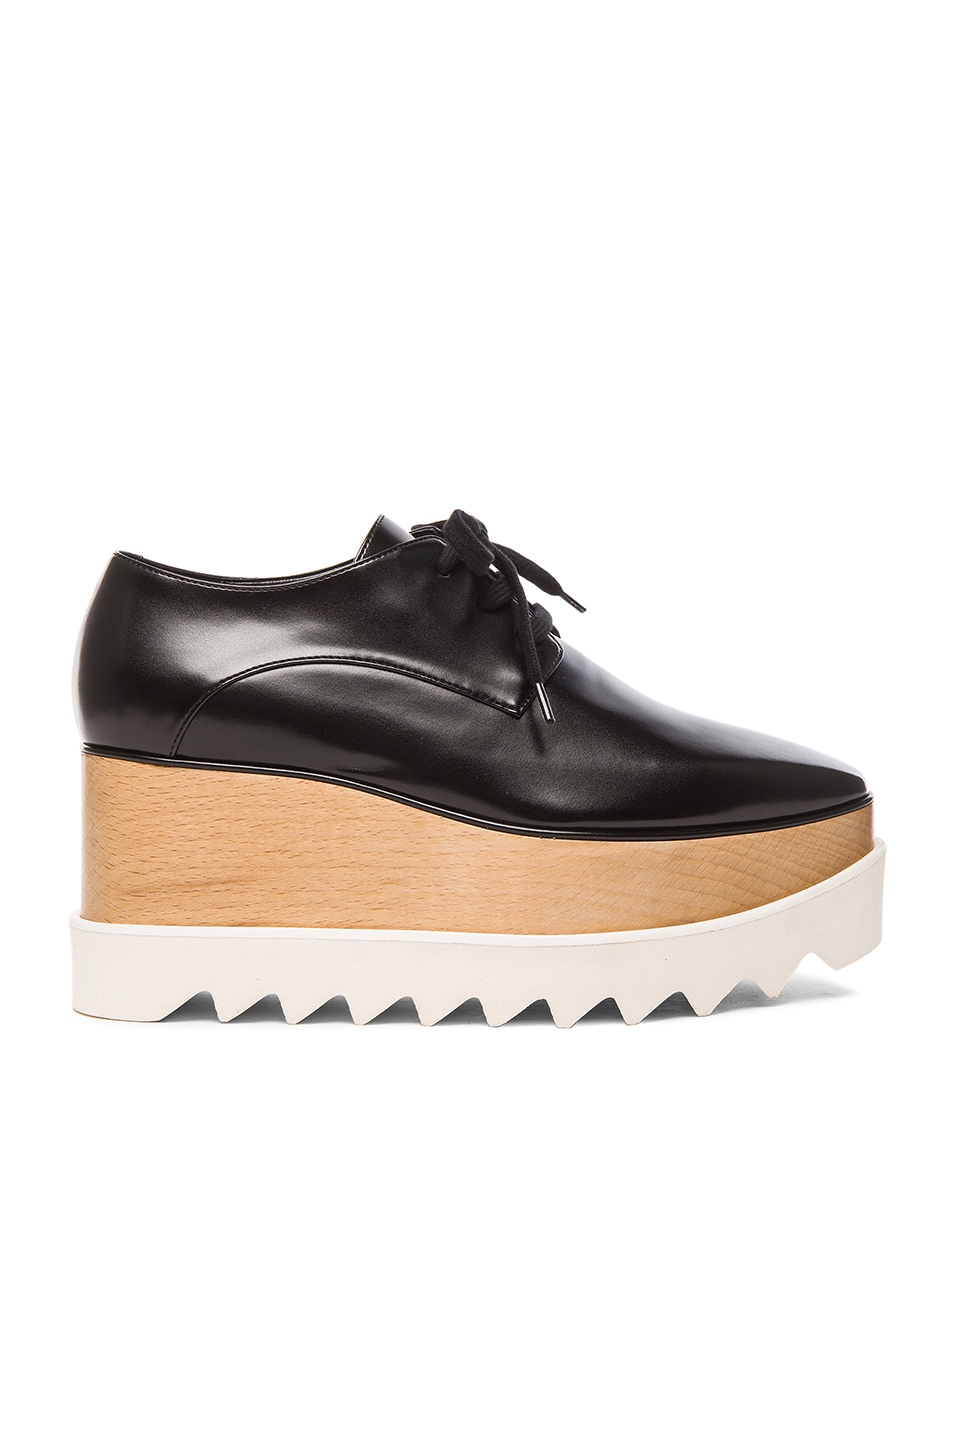 Stella McCartney Elyse platform sneakers Release Dates Online Cheap Sale Release Dates Cheap Price Fake X7UAvcMSC